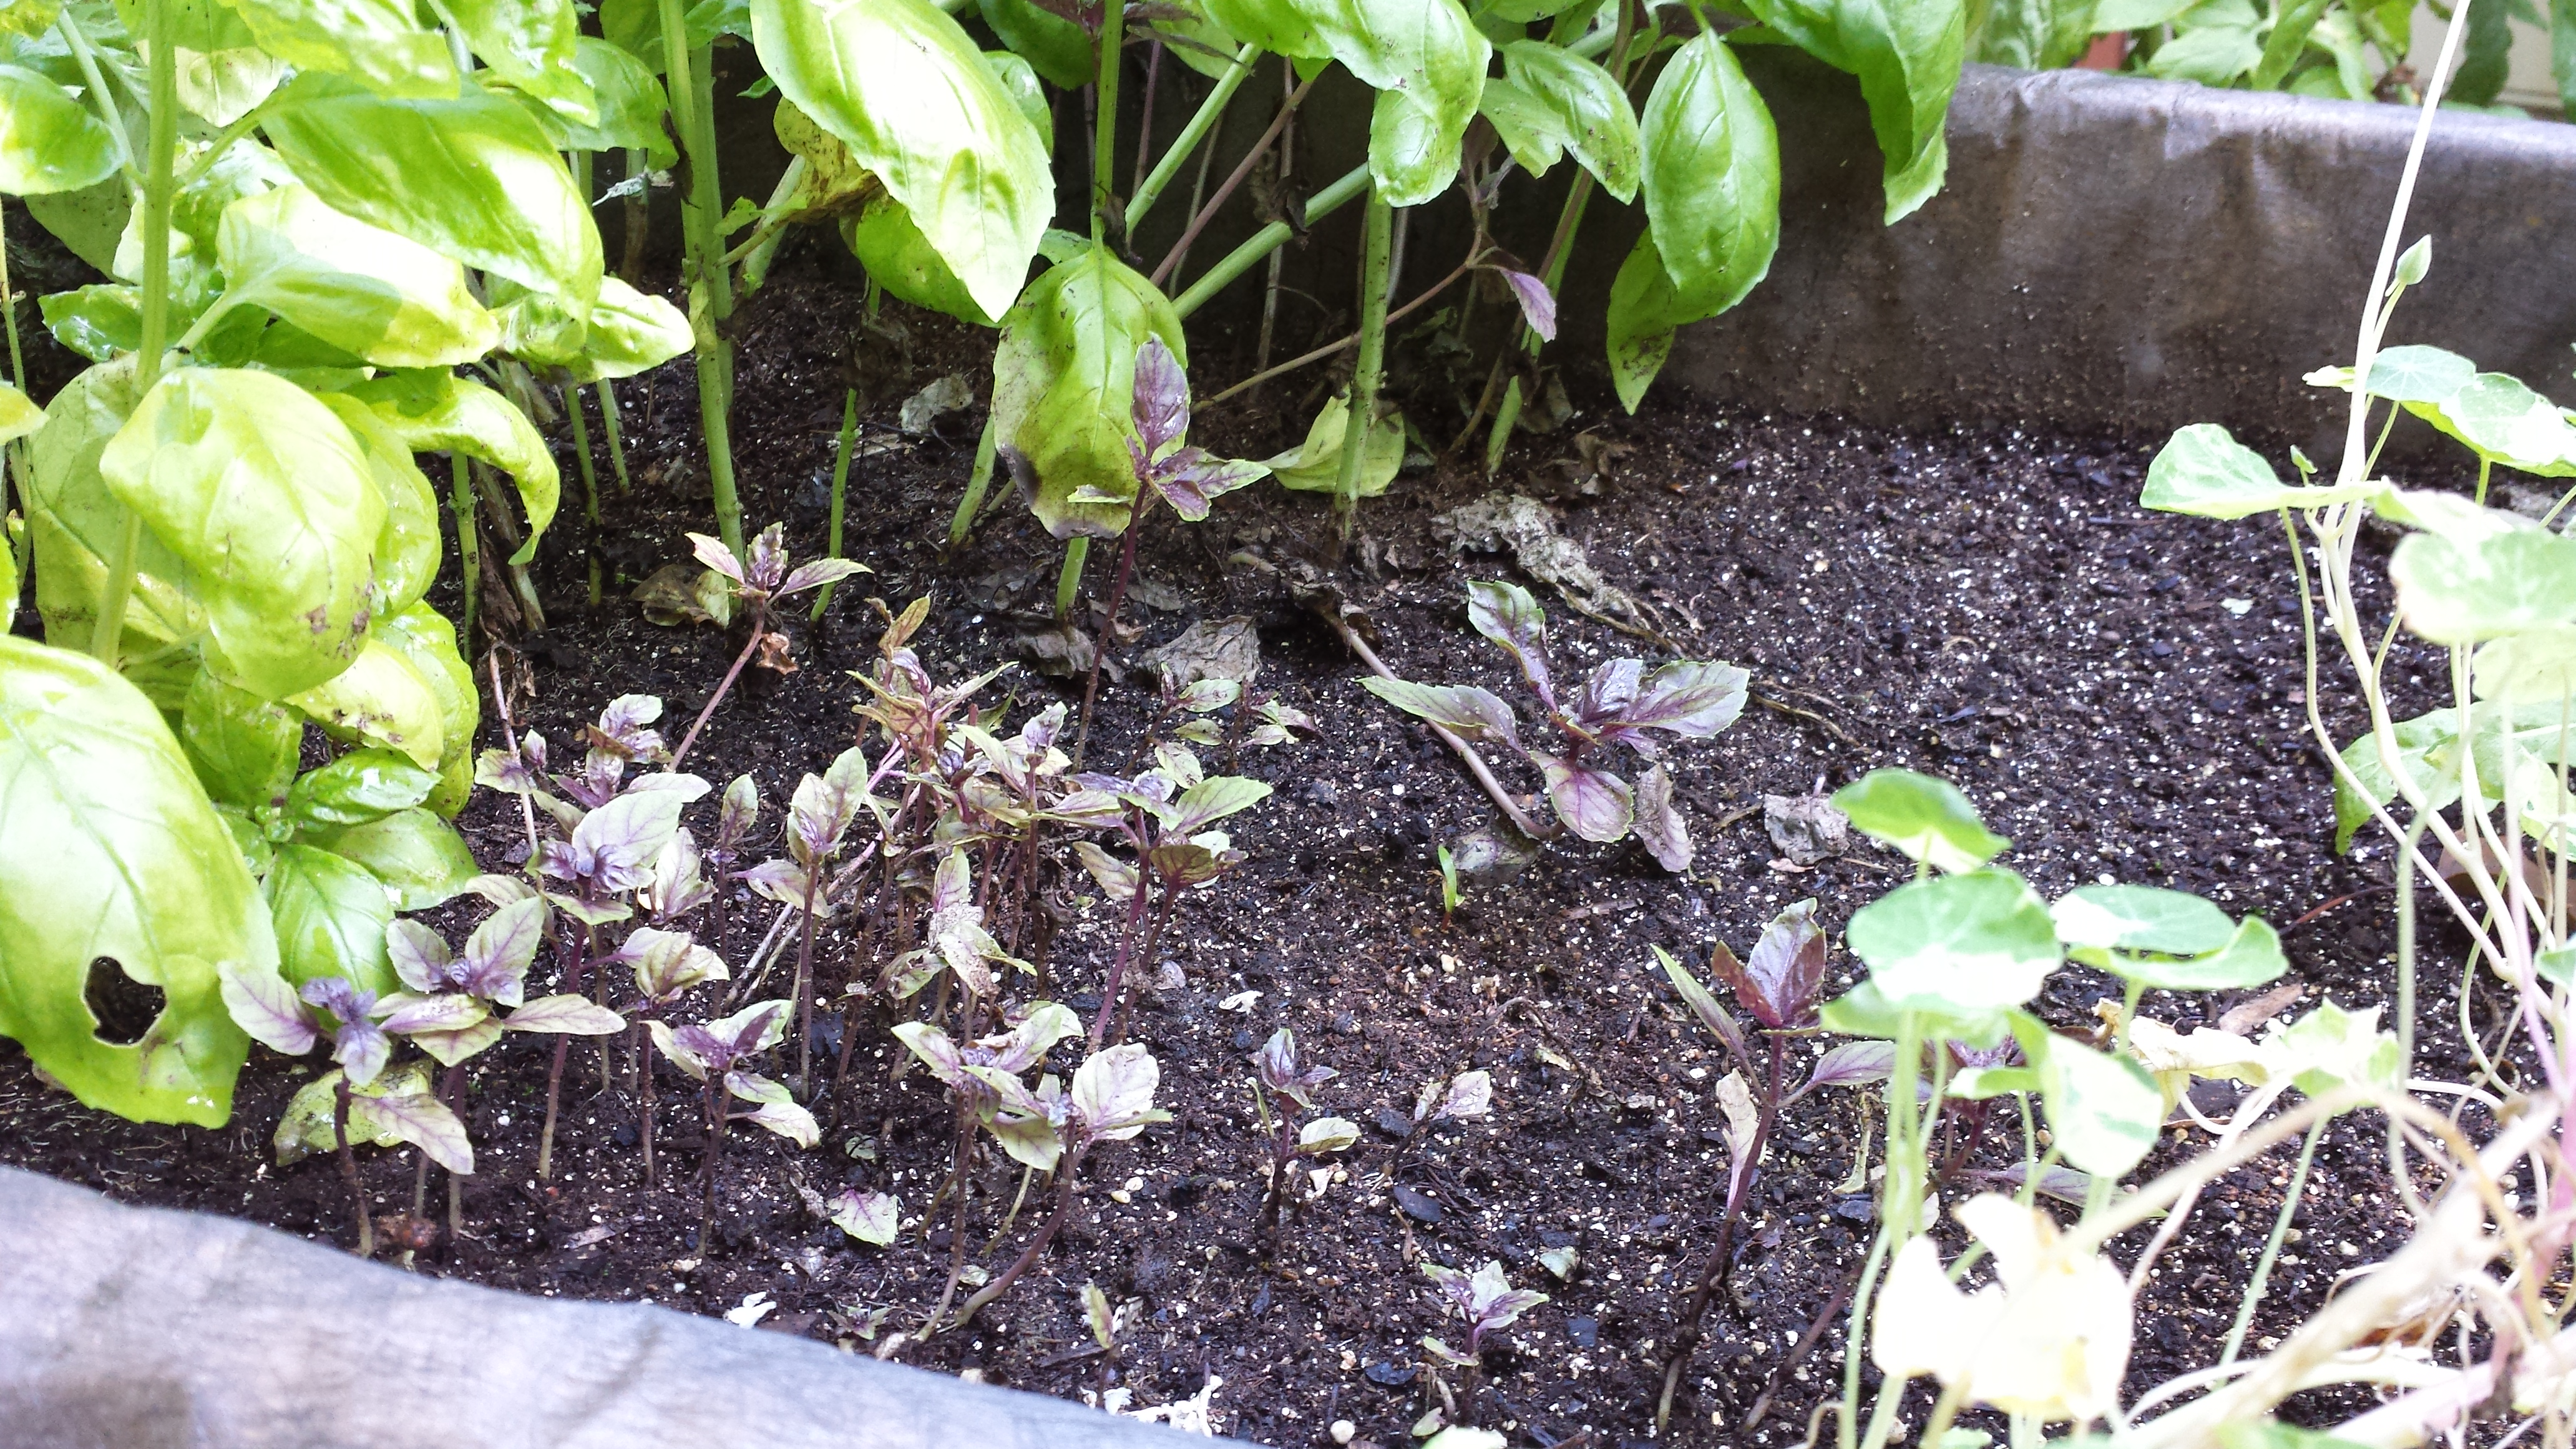 My stunted purple basil next to Genovese basil that is going gangbusters